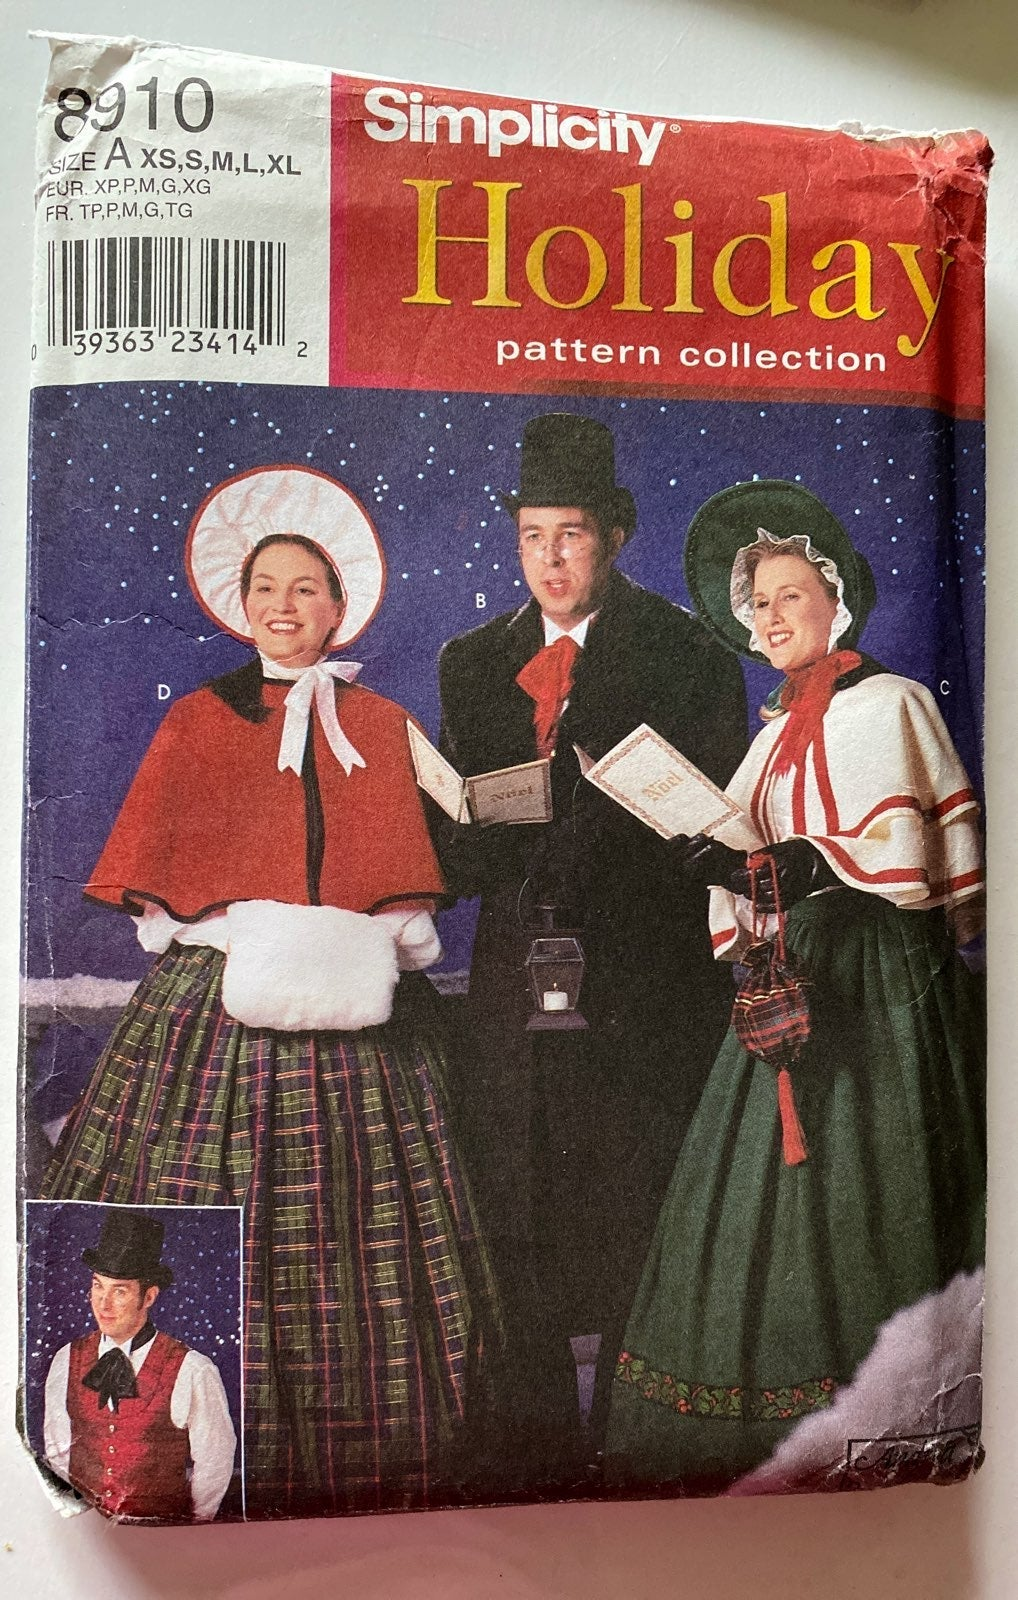 Simplicity Holiday pattern Christmas